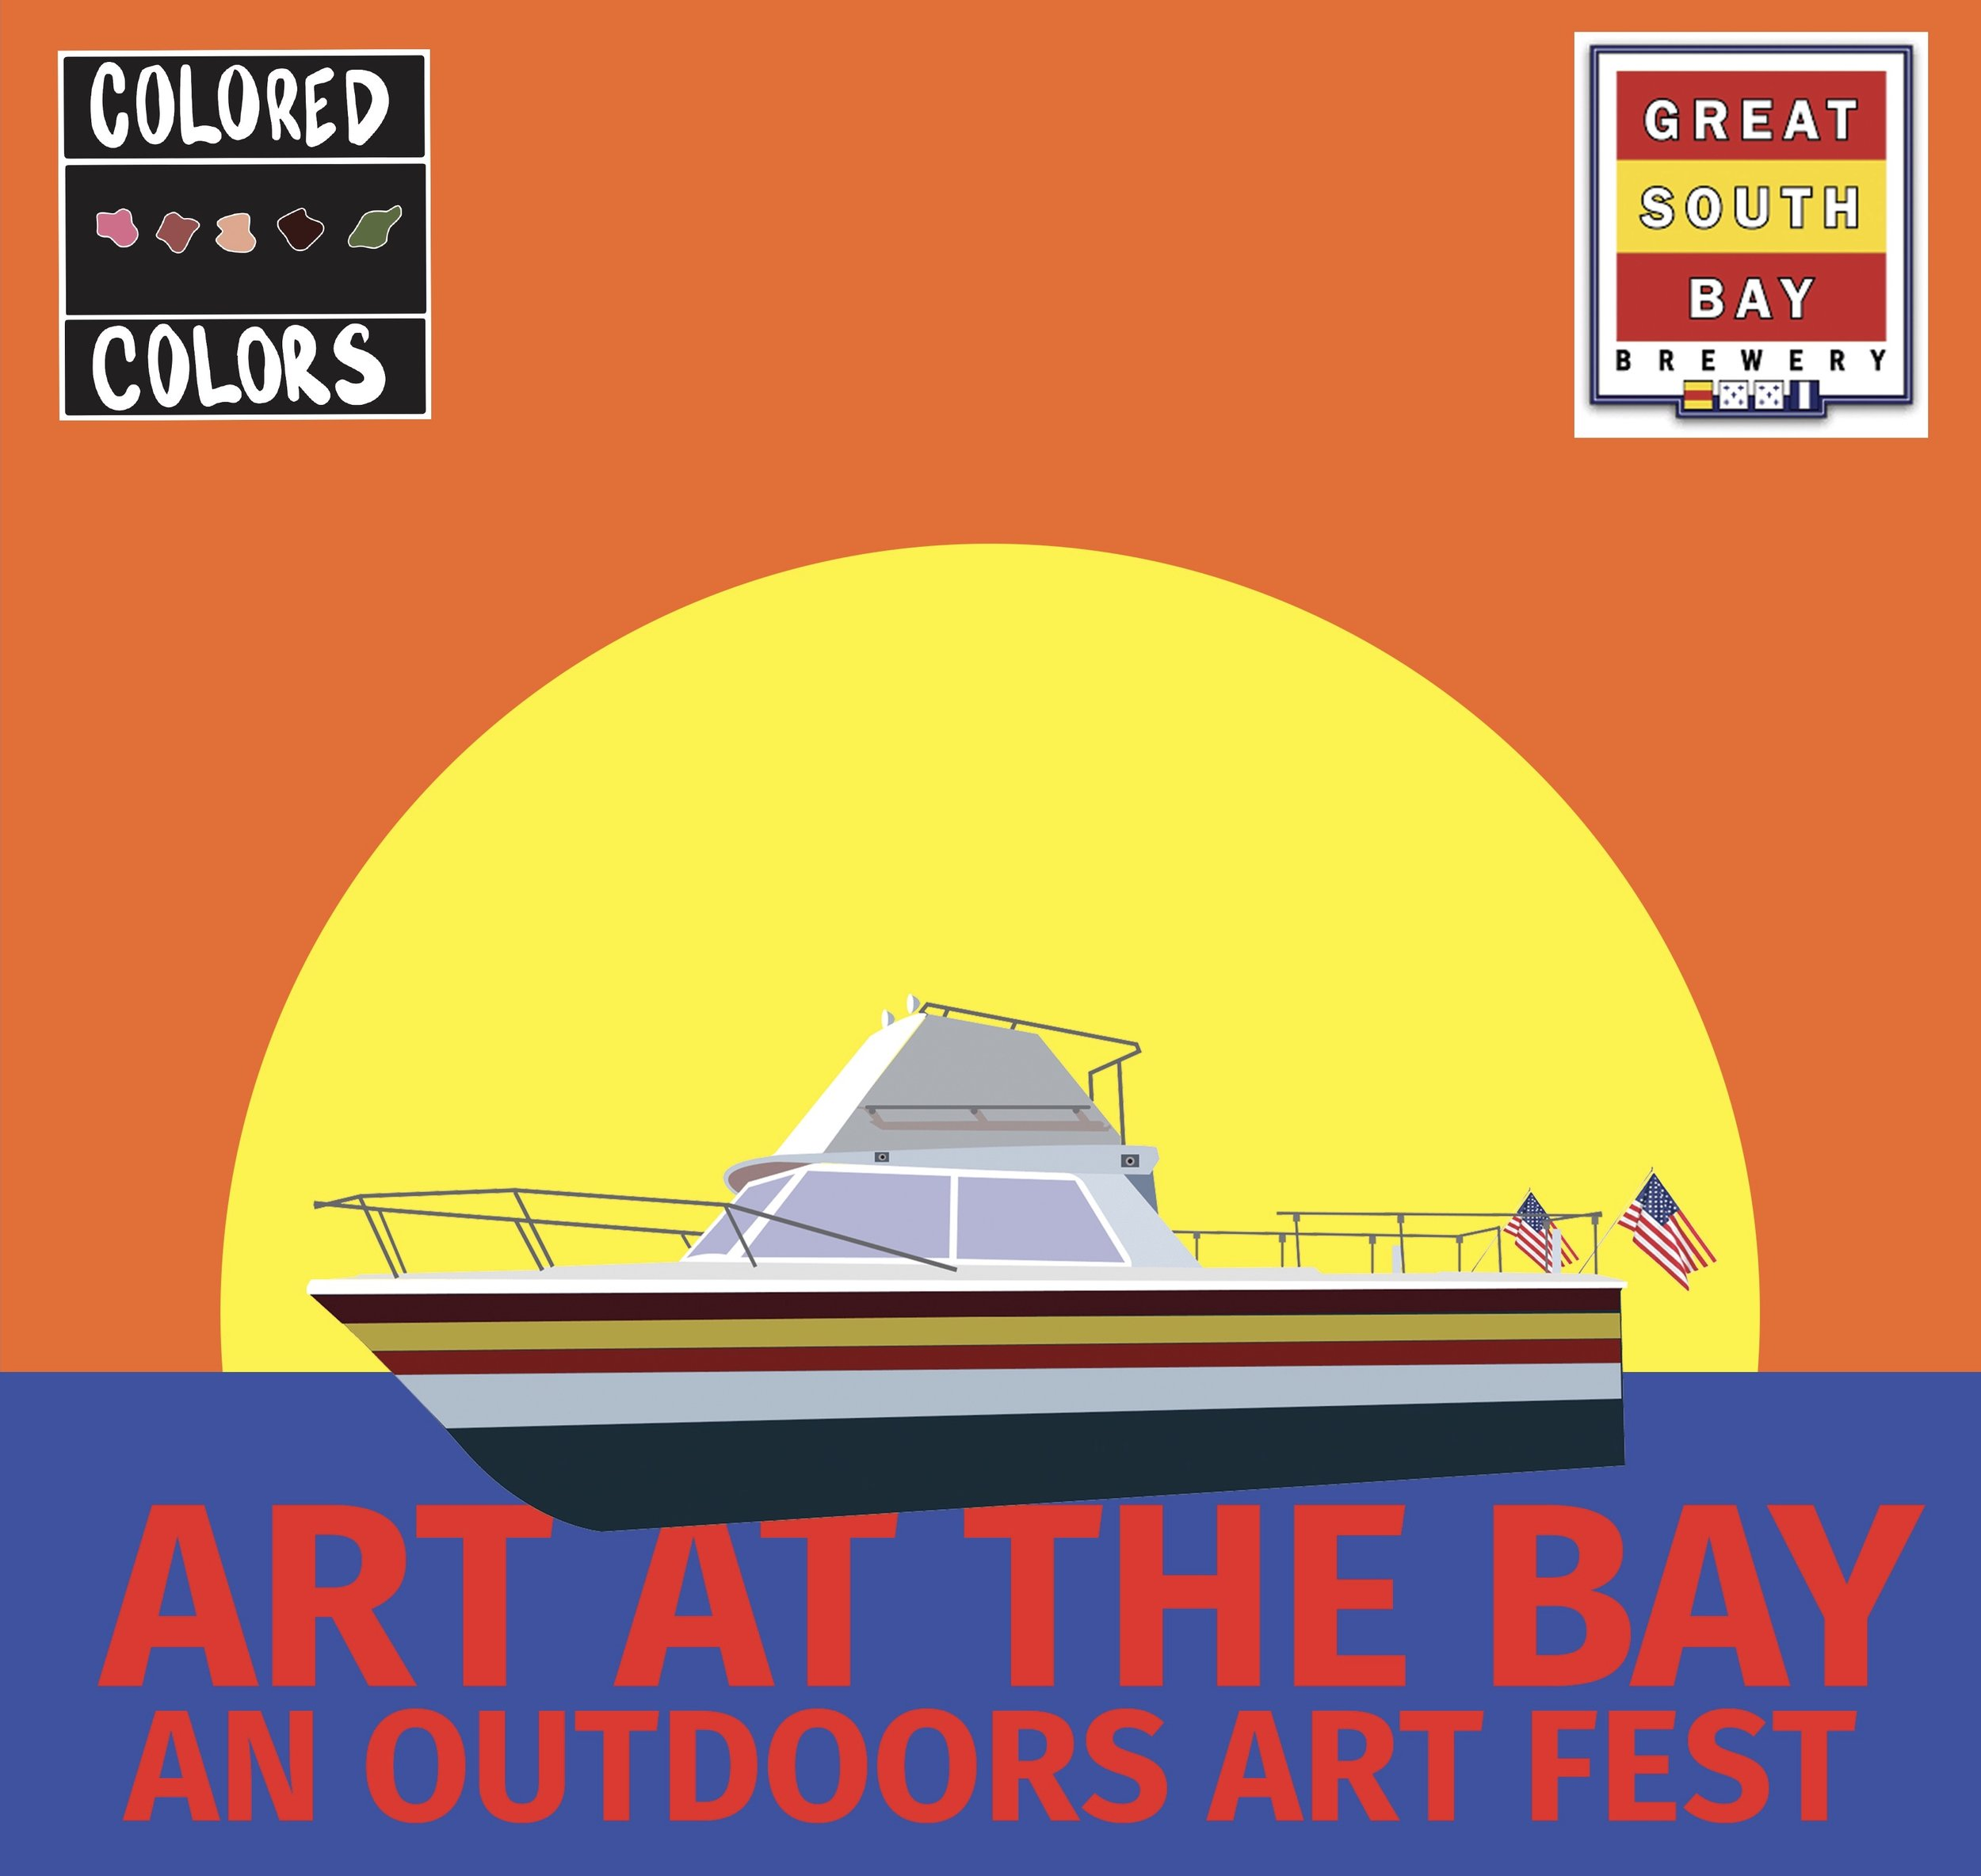 ART AT THE BAY - Our first outdoor art fest at the amazing Great South Bay Brewery. There was so much talent featured at this amazing end of the summer event!